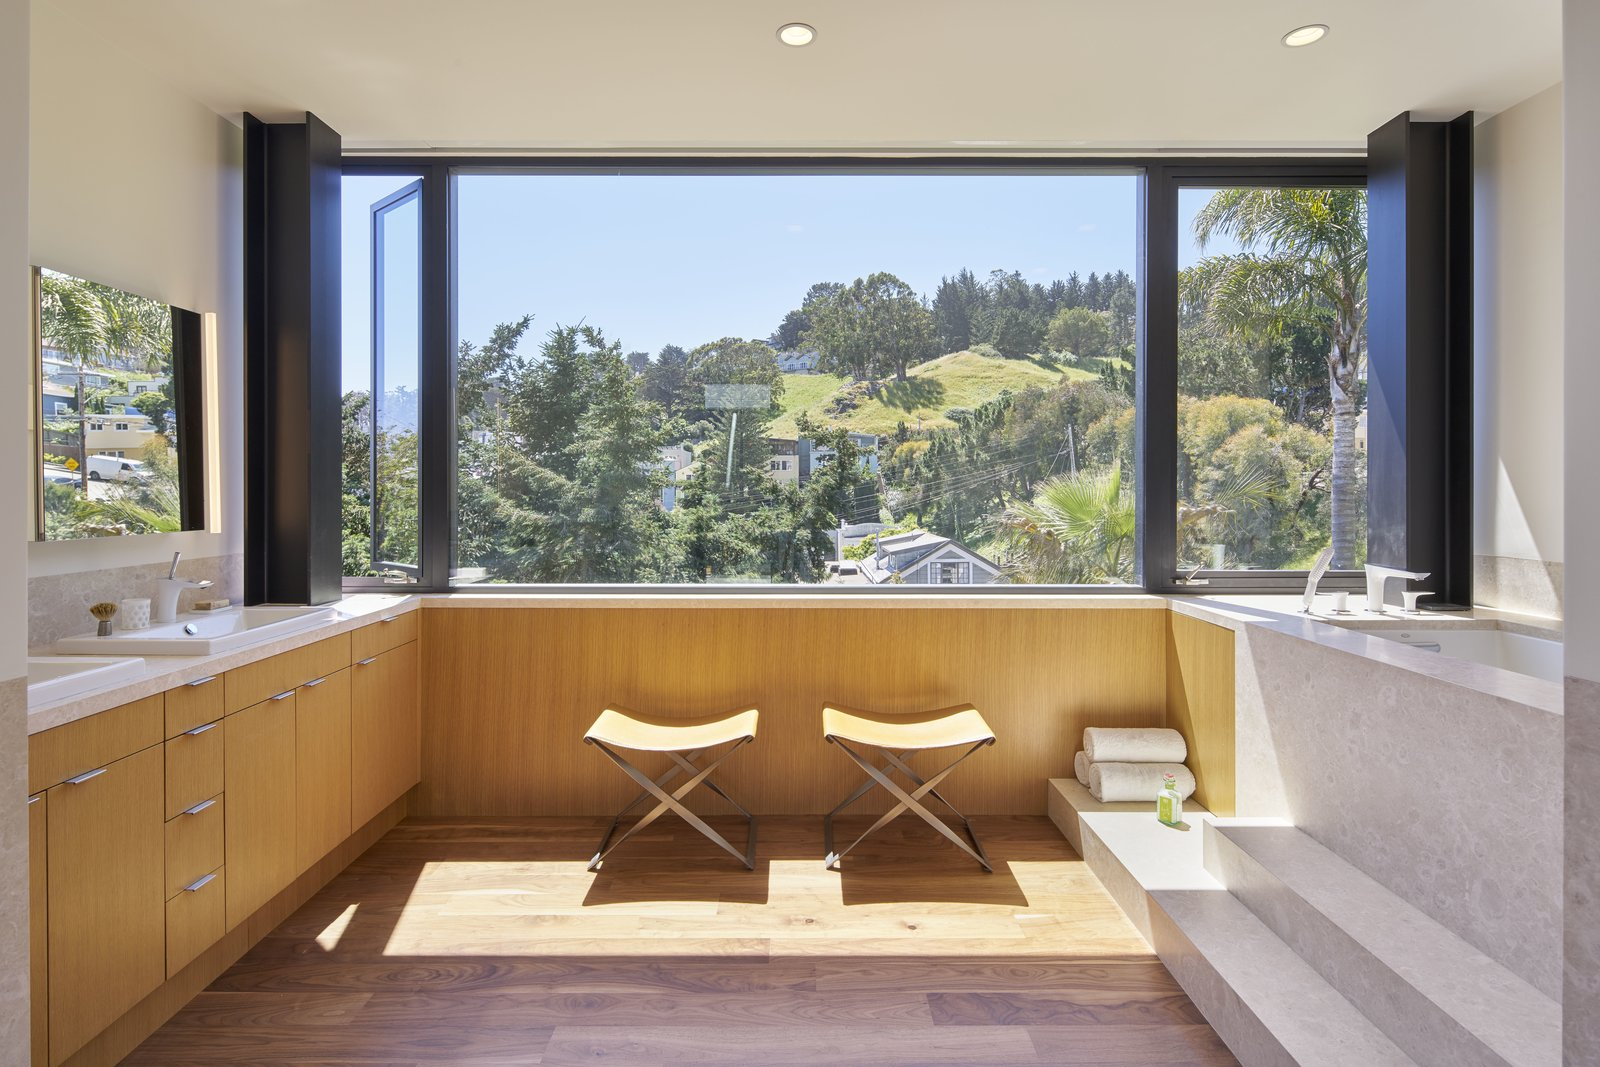 Bath Room, Soaking Tub, Drop In Sink, Medium Hardwood Floor, Drop In Tub, and Recessed Lighting  29th Street Residence by Schwartz and Architecture